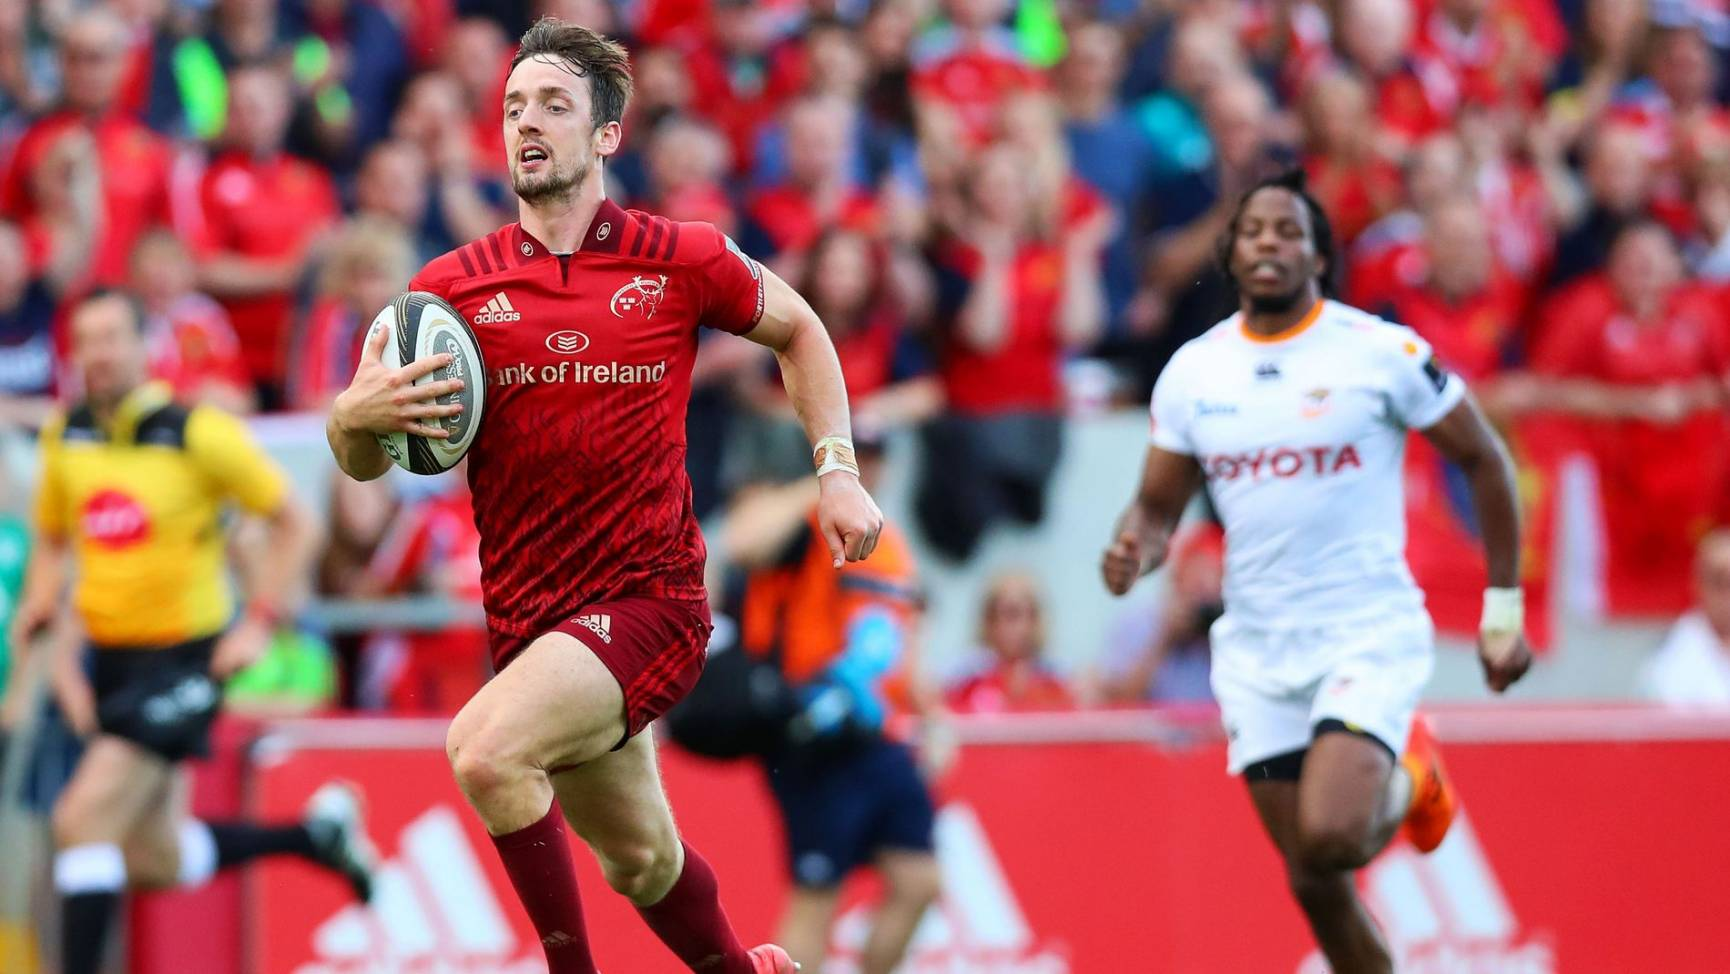 487b09b83d9a6 Irish Rugby | Sweetnam In Man-Of-The-Match Form As Munster Hit ...